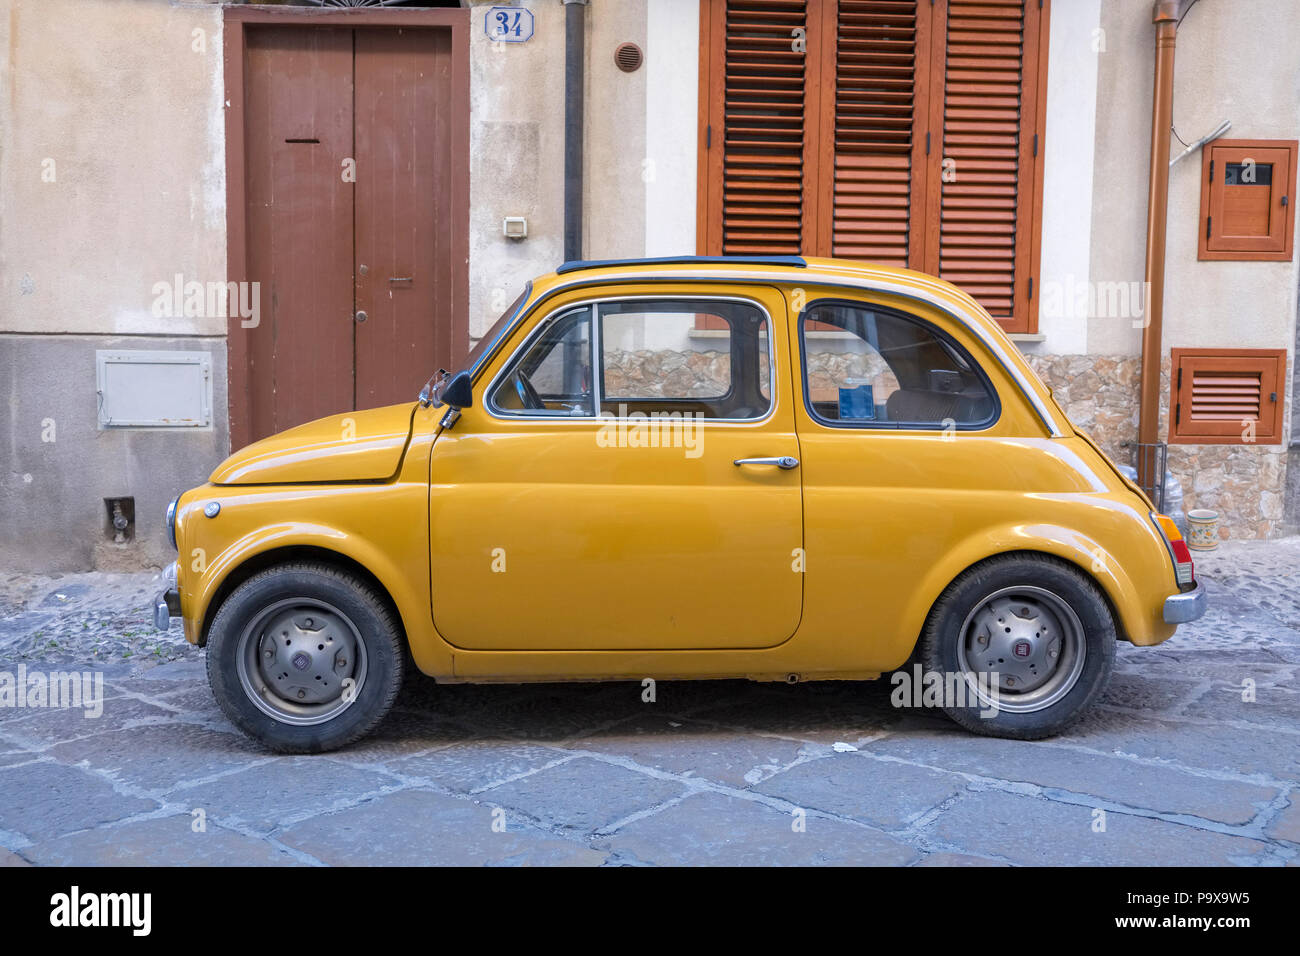 A Fiat 500 car, in Cefalu, Sicily, Italy, Europe - Stock Image